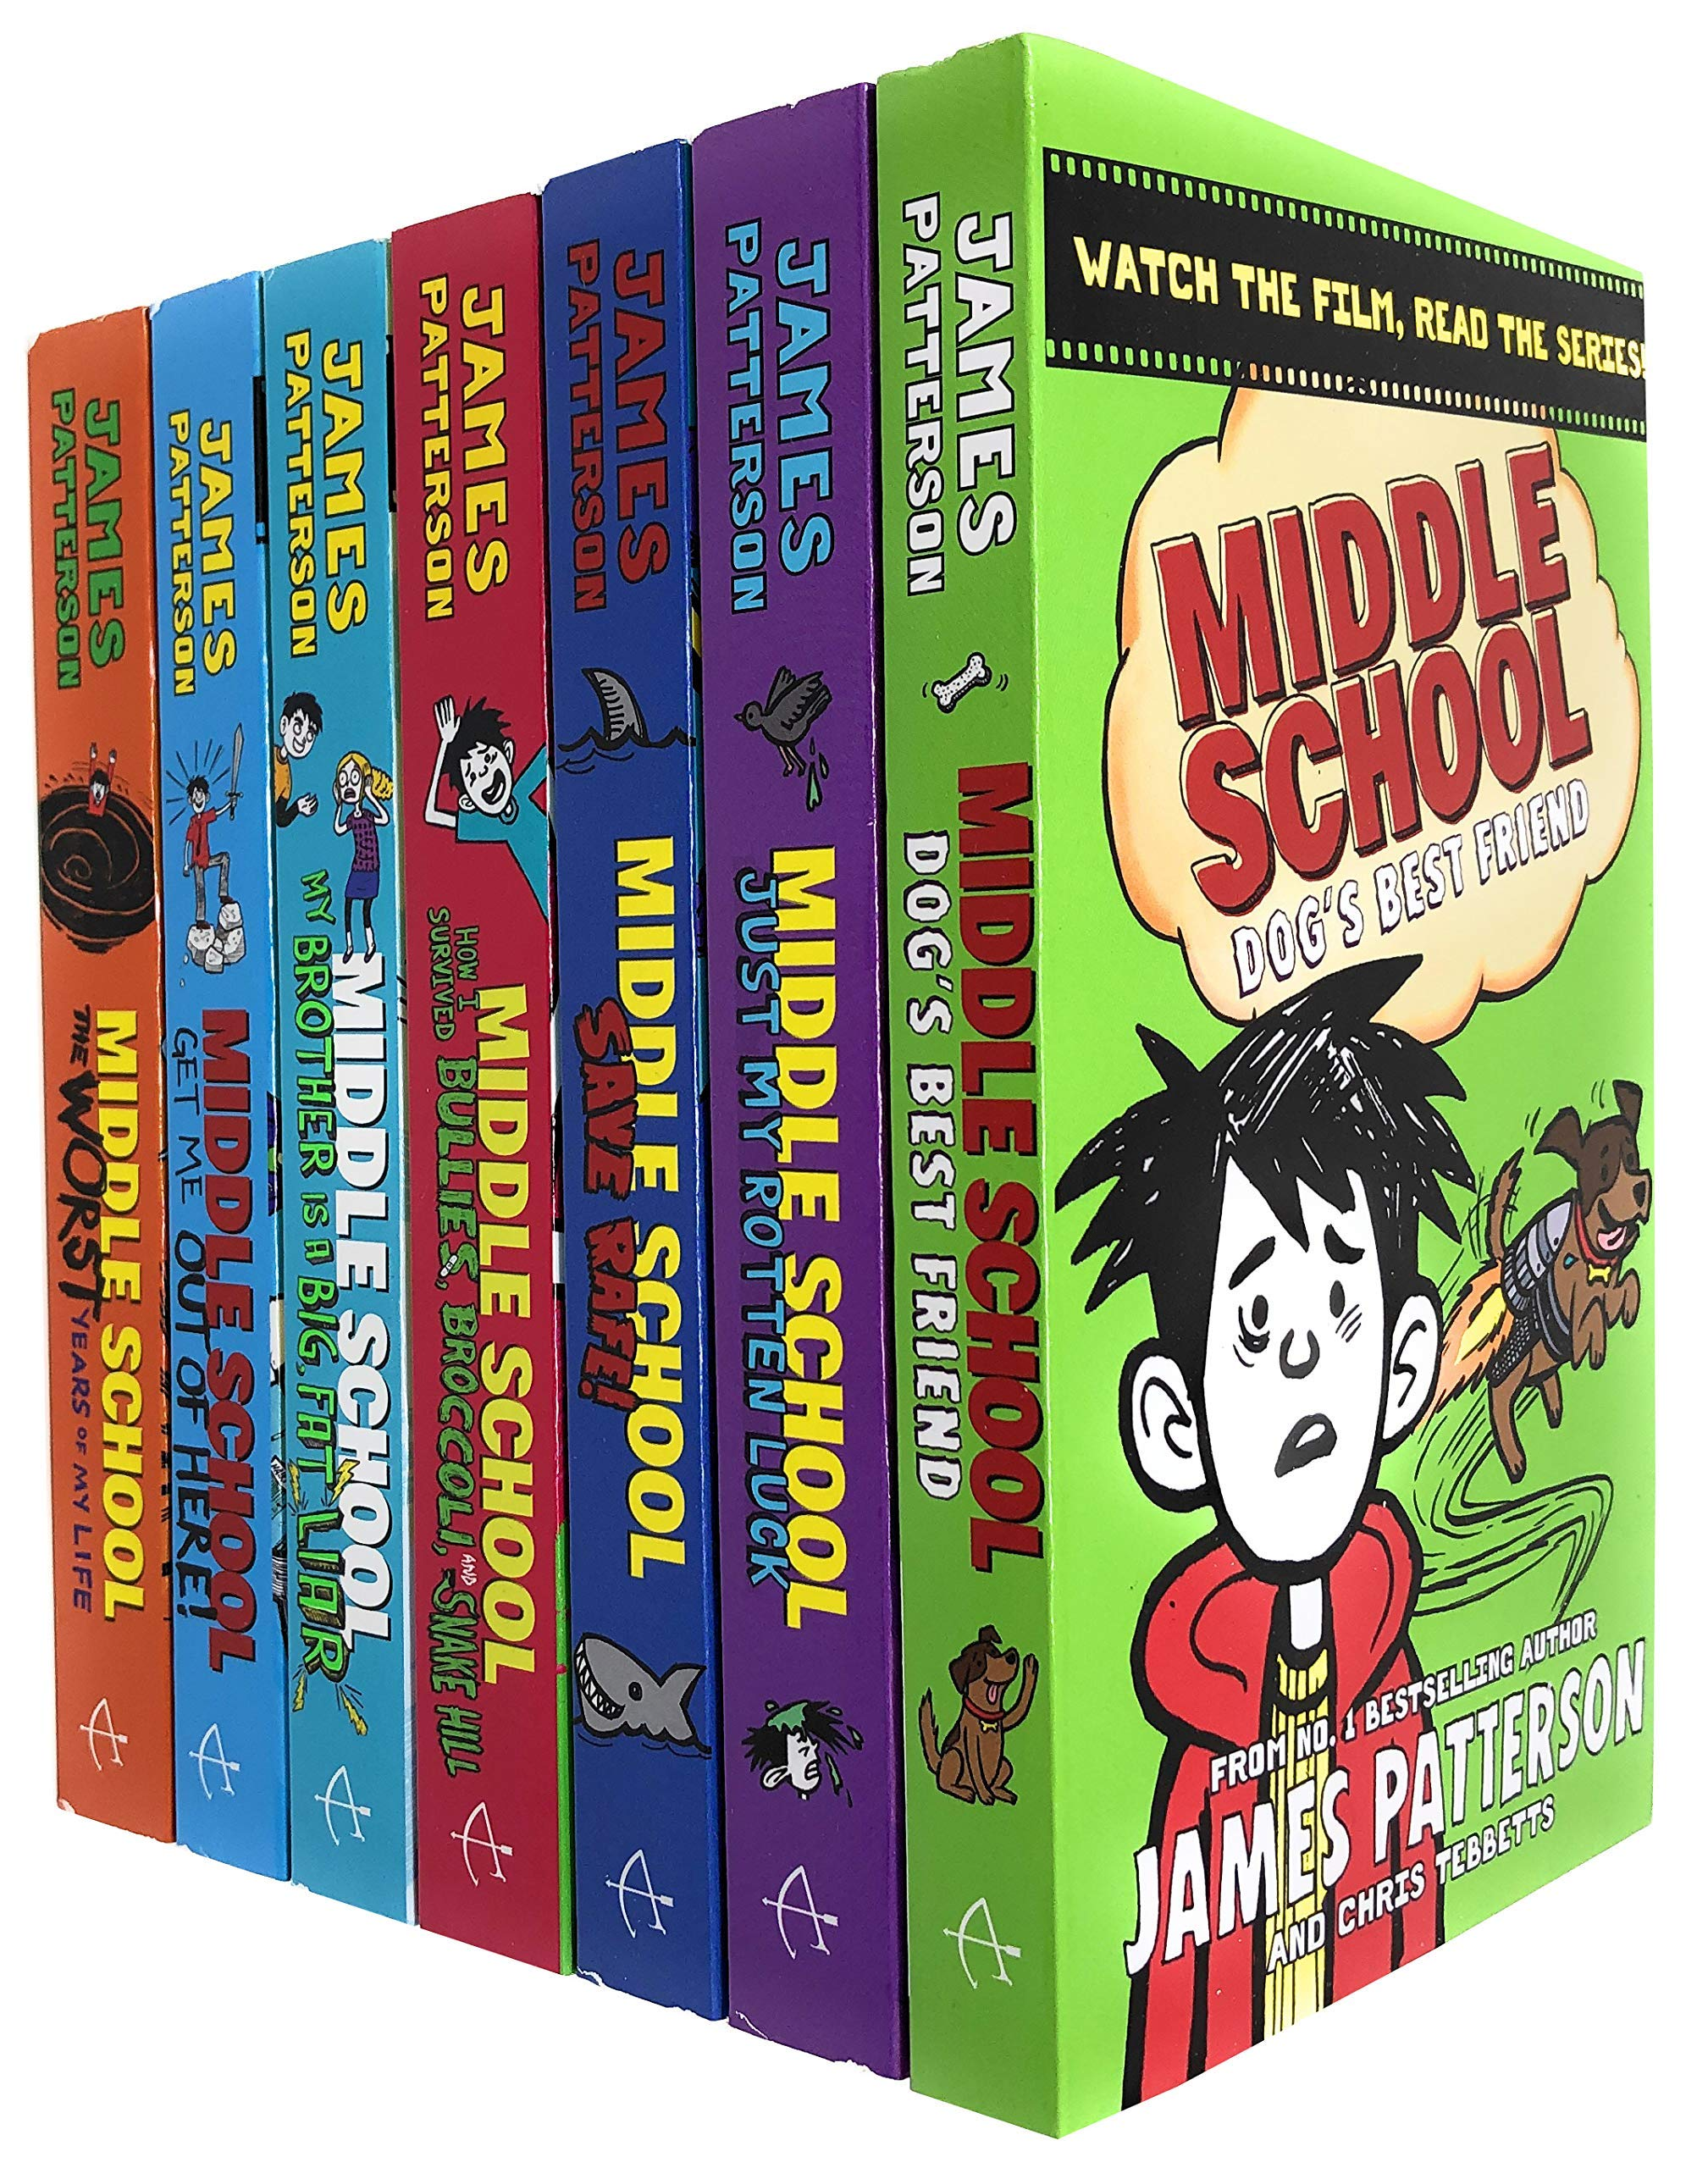 Amazon Com Middle School 7 Books Collection Set By James Patterson Dogs Best Friend Just My Rotten Luck Save Rafe My Brother Is A Big Fat Liar More 9789124022945 James Patterson Middle